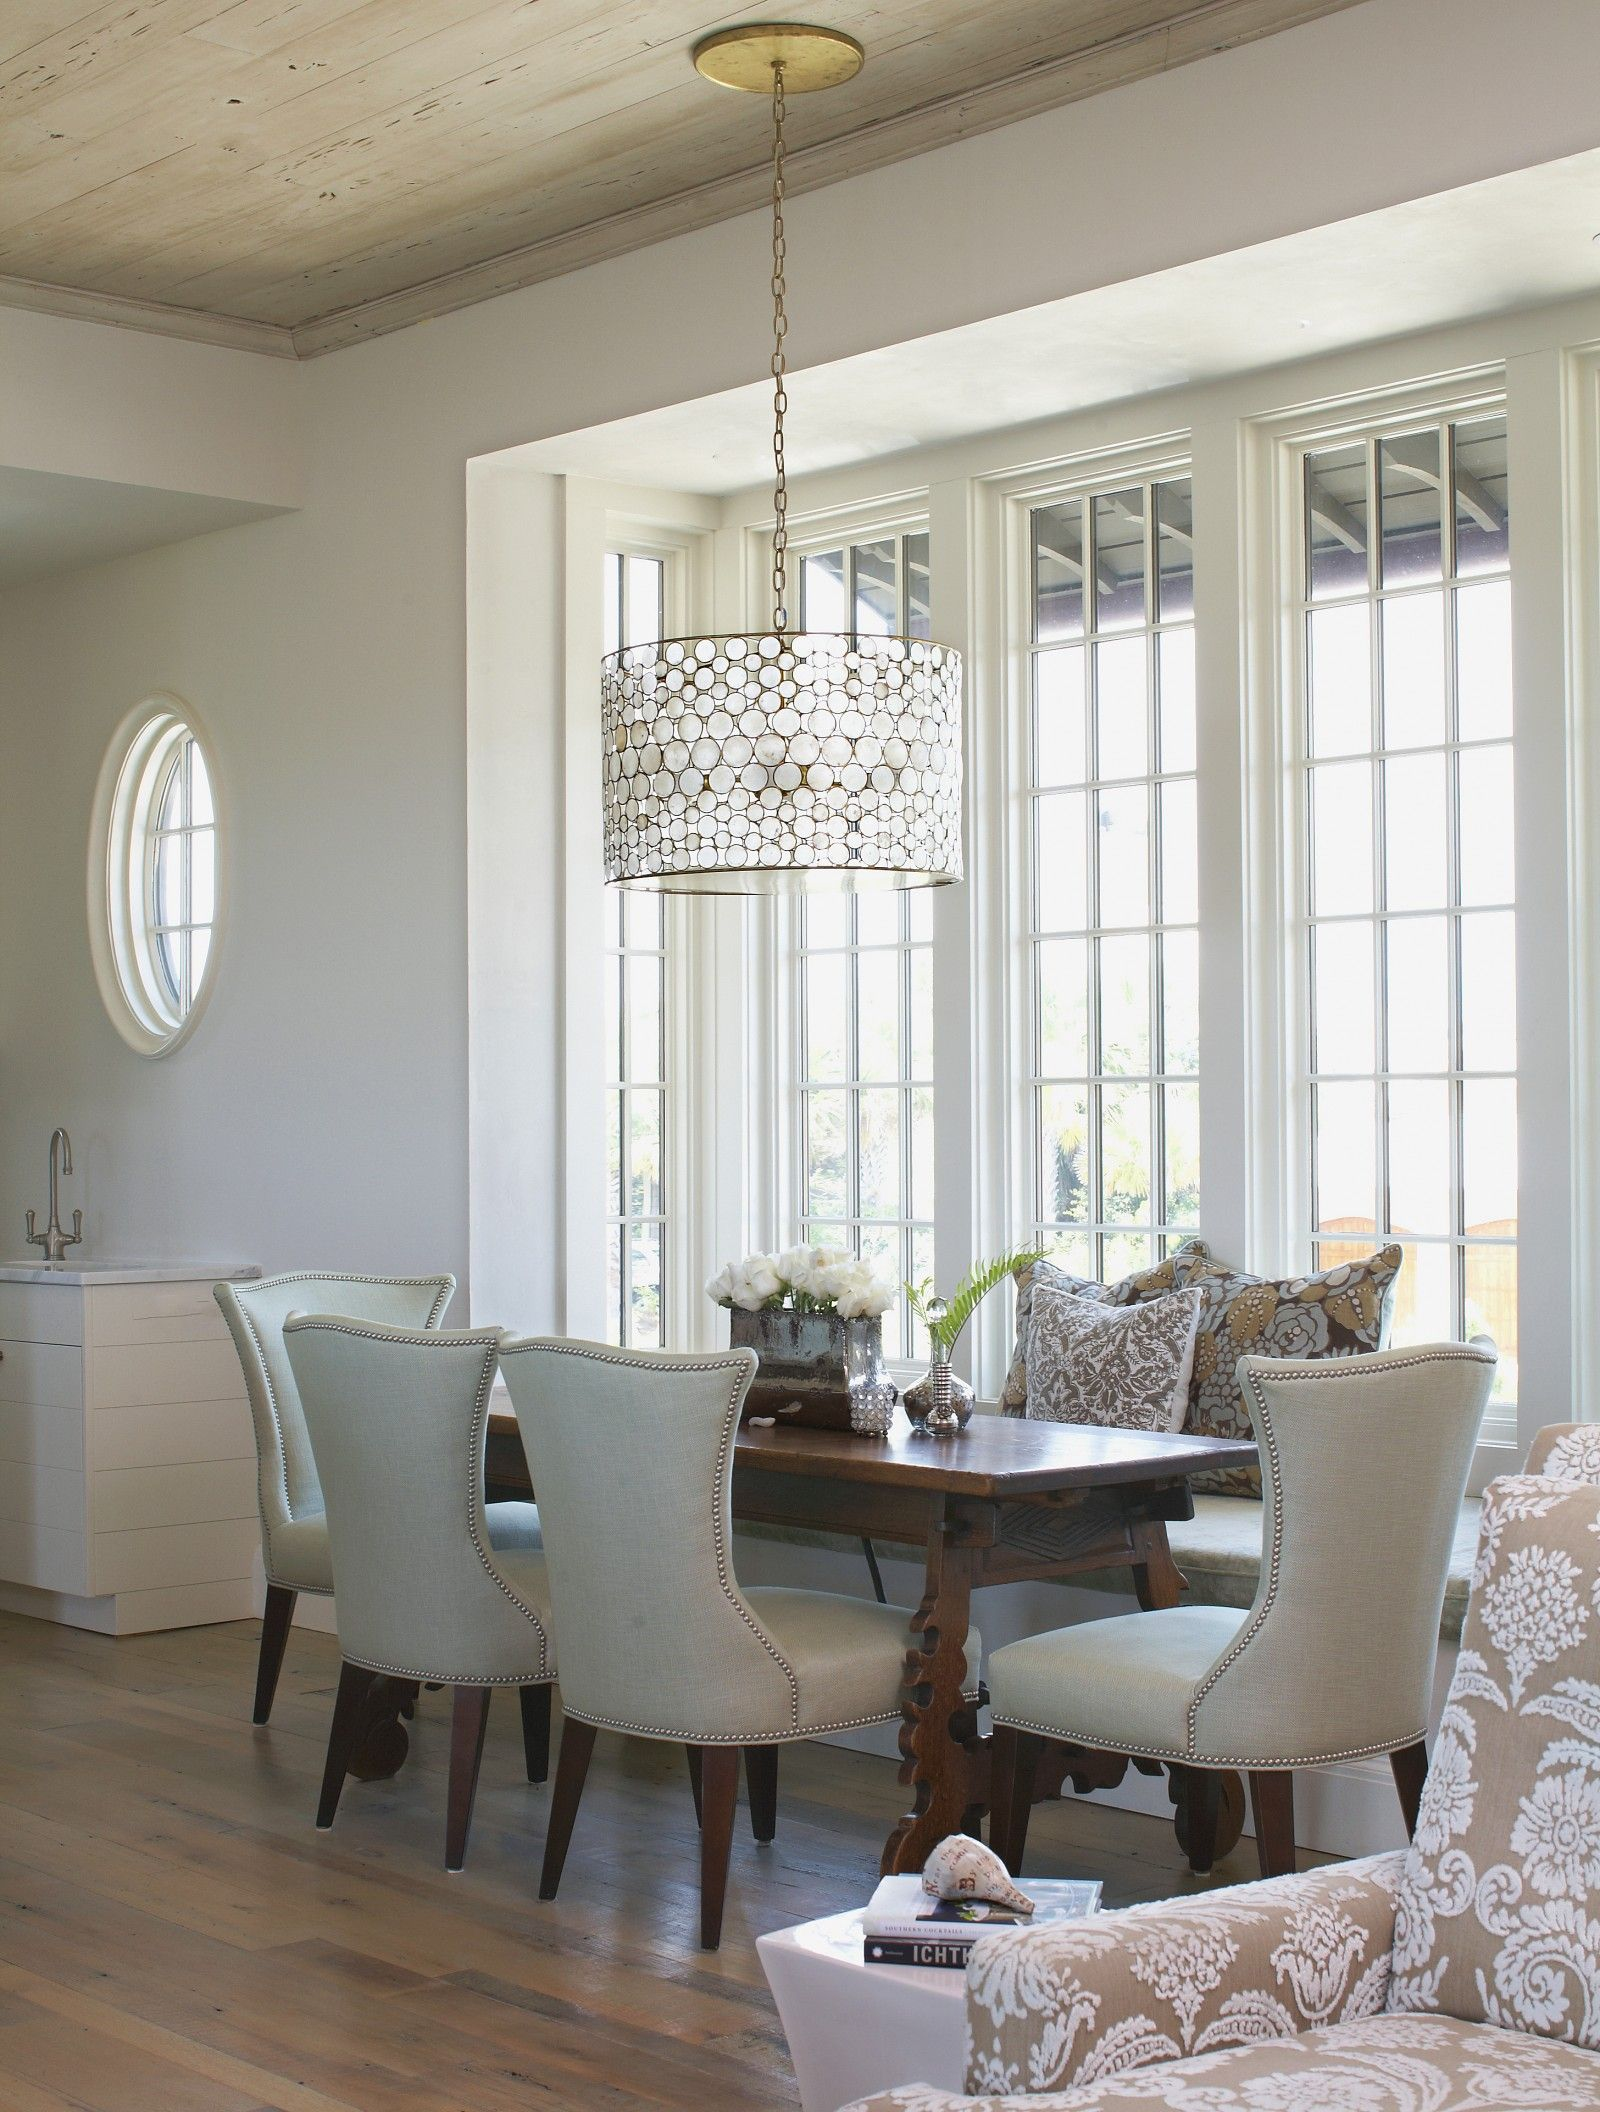 Elegant Dining Room Chandeliers Hadley This Client Found One Of The Most Gorgeous Views Anywhere